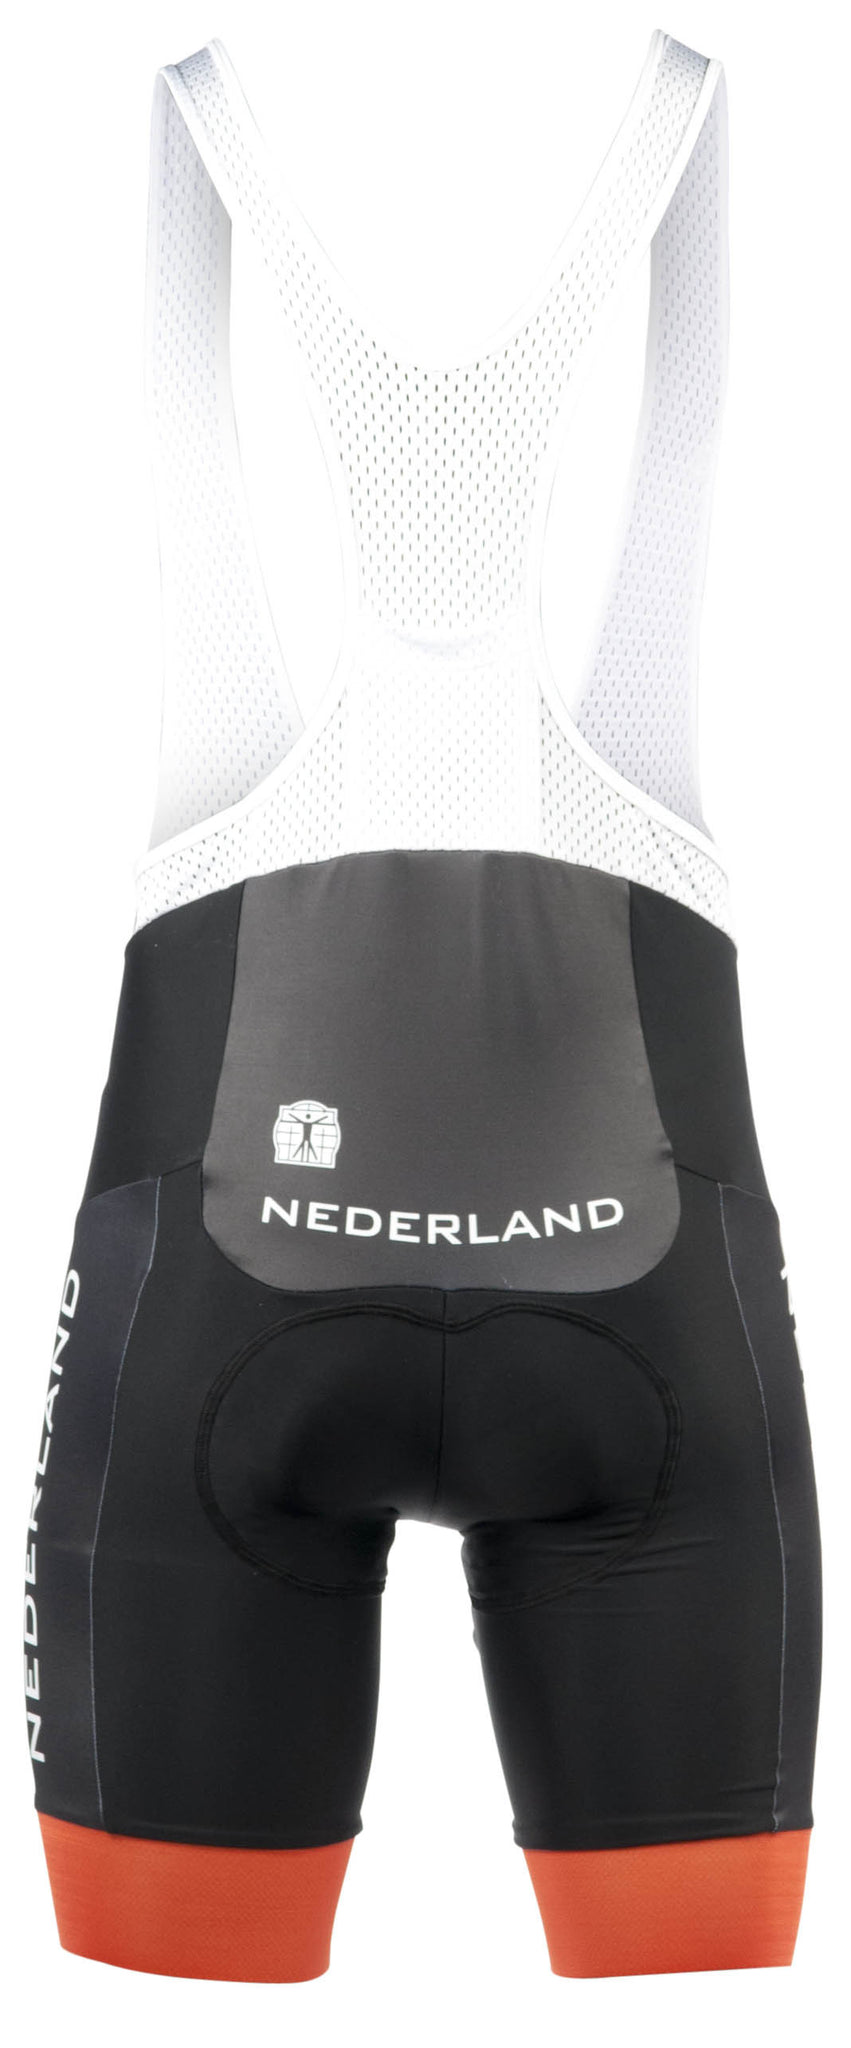 Netherlands Bibshort Race Proven